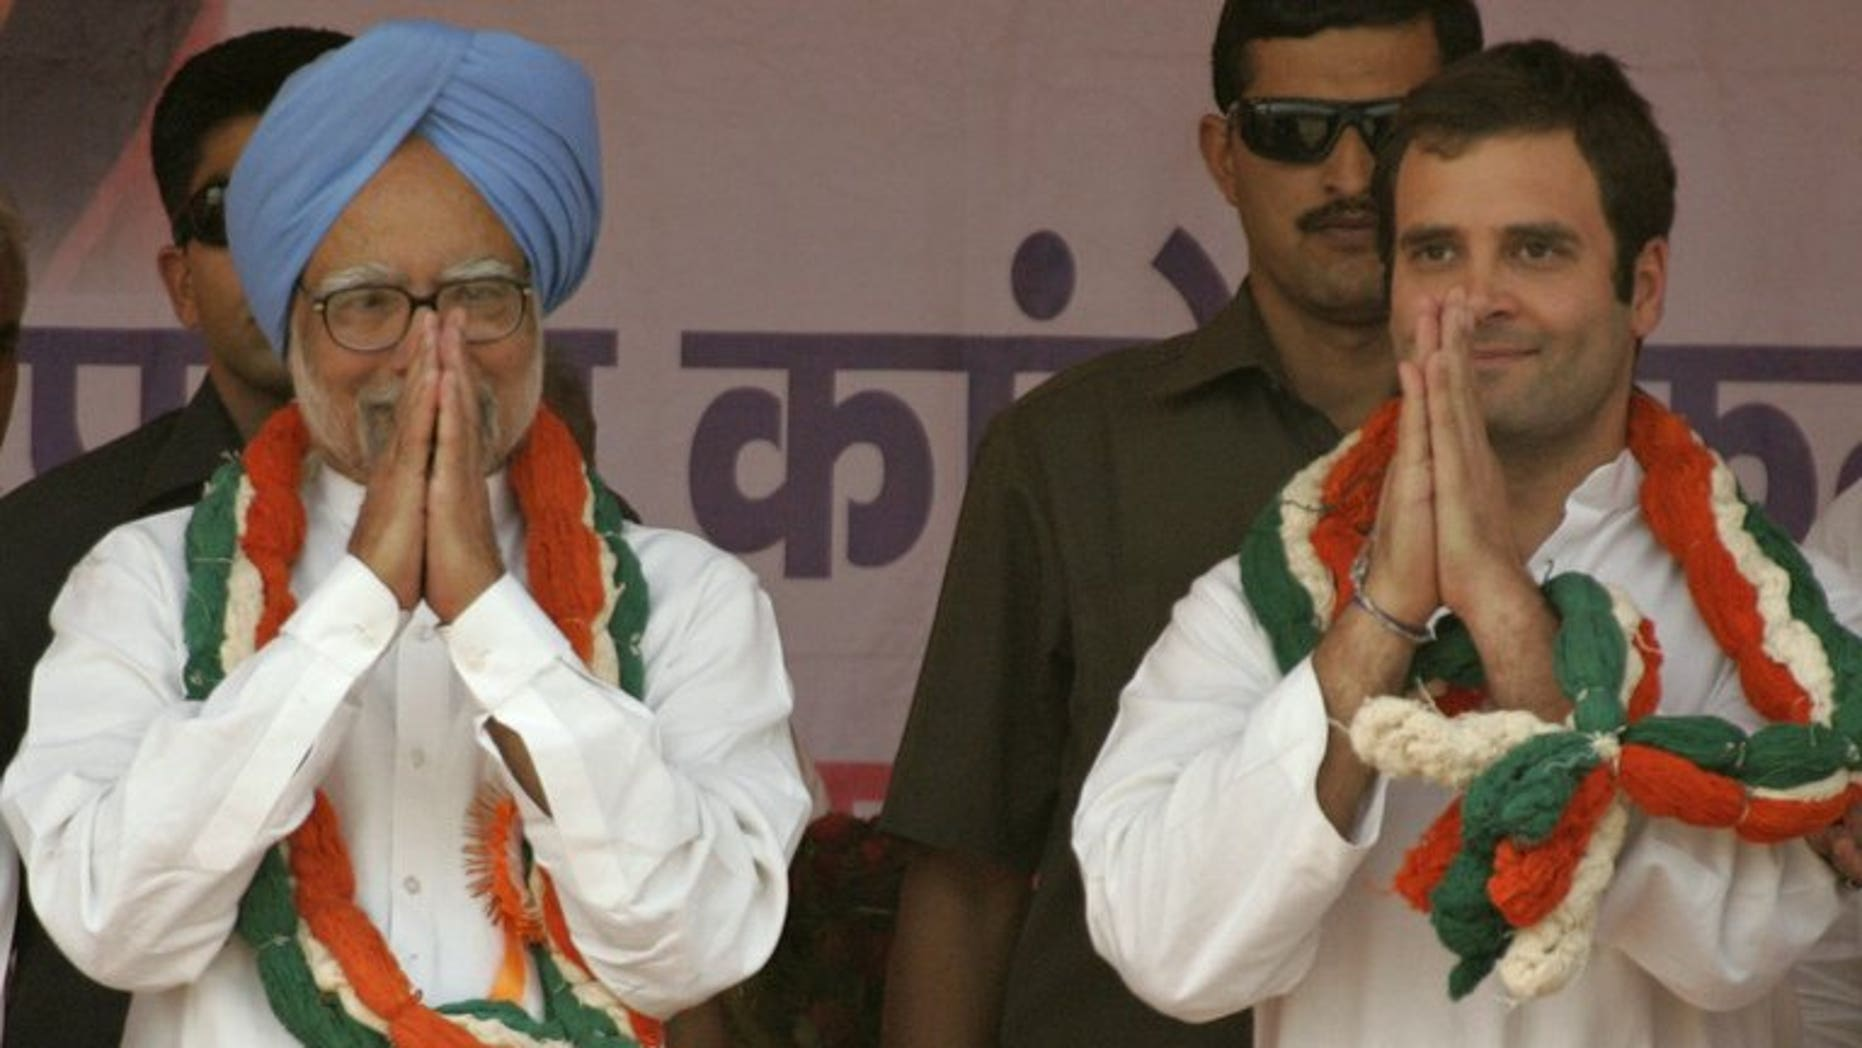 Indian Prime Minister Manmohan Singh (left) and Rahul Gandhi gesture to supporters during a rally in Banda, on April 30, 2011.